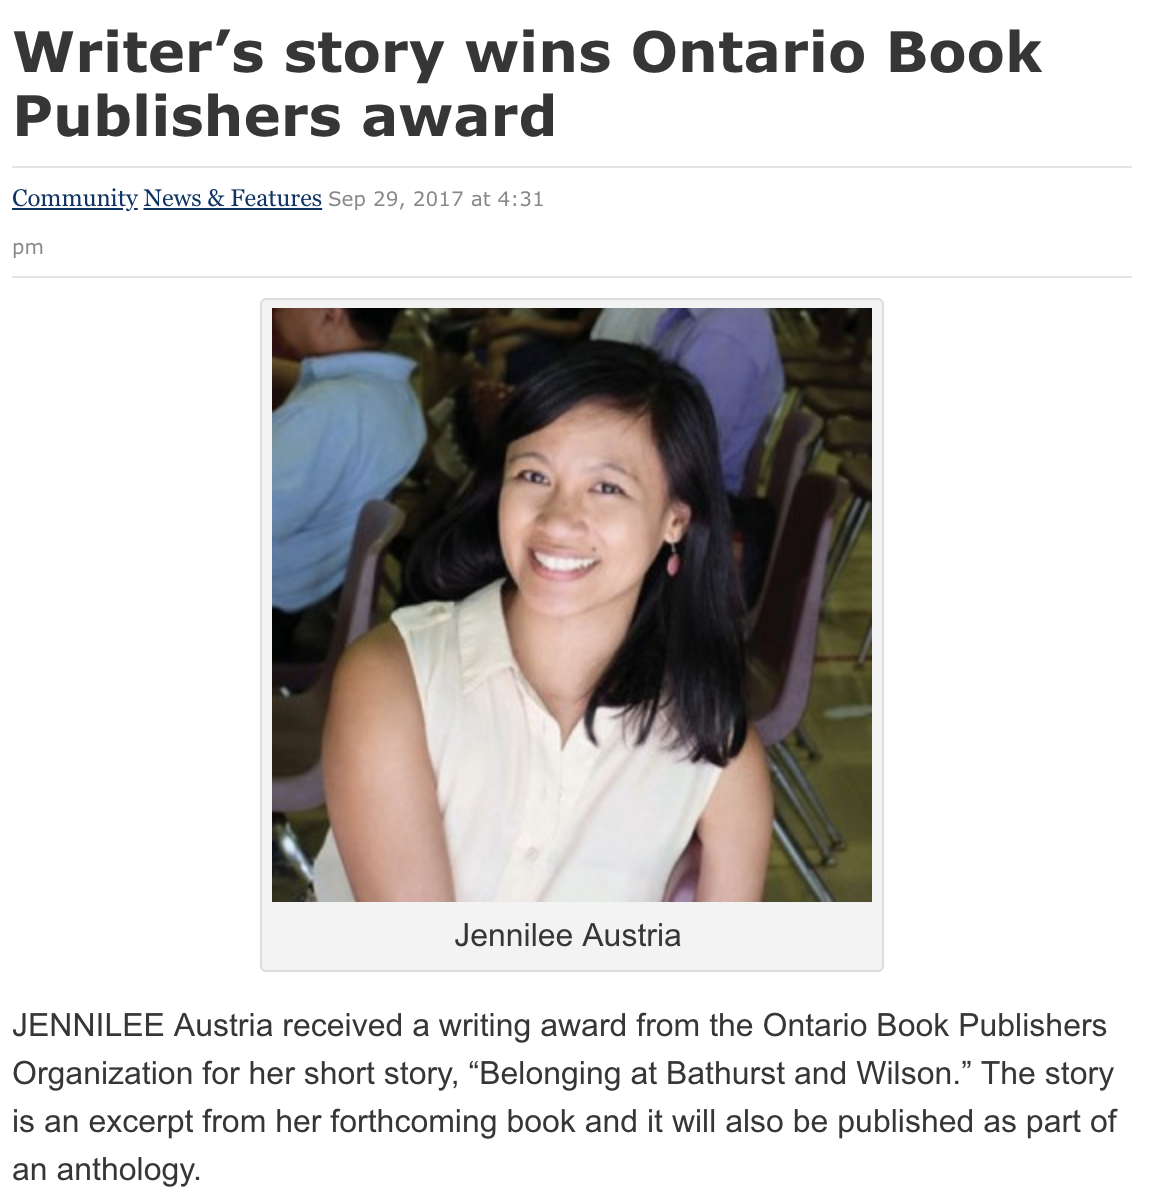 From the article:  http://philippinereporter.com/2017/09/29/writers-story-wins-ontario-book-publishers-award/